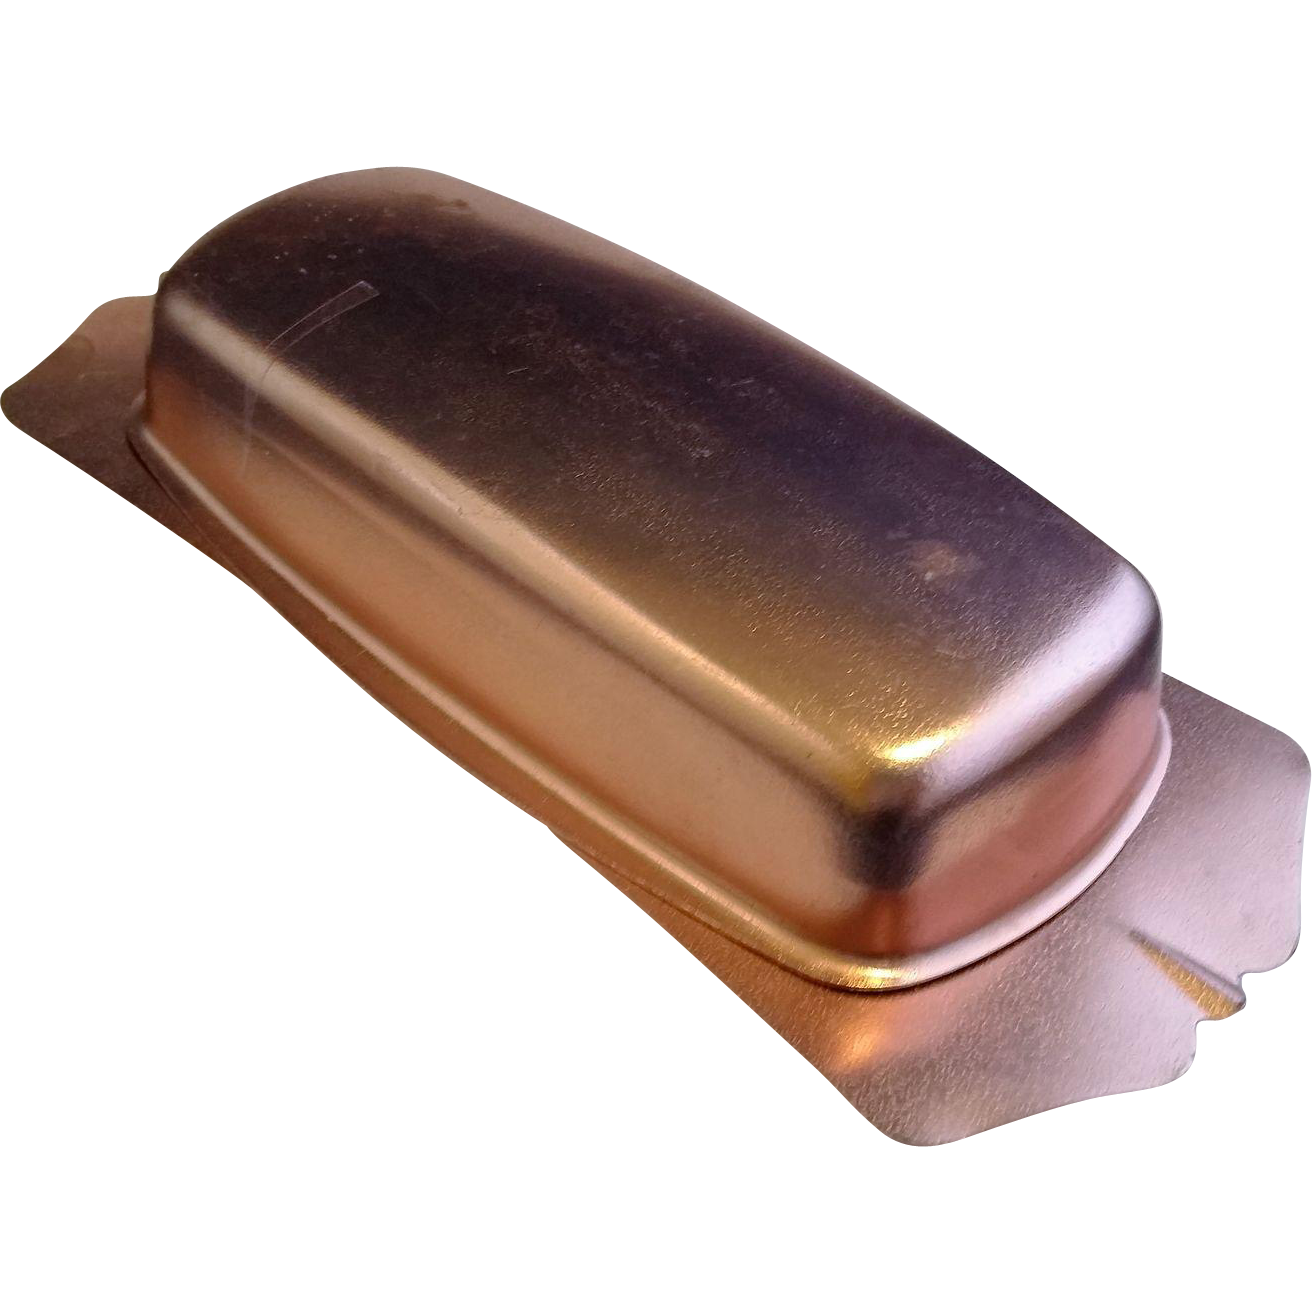 Pink Copper Colored Anodized Aluminum Butter Dish